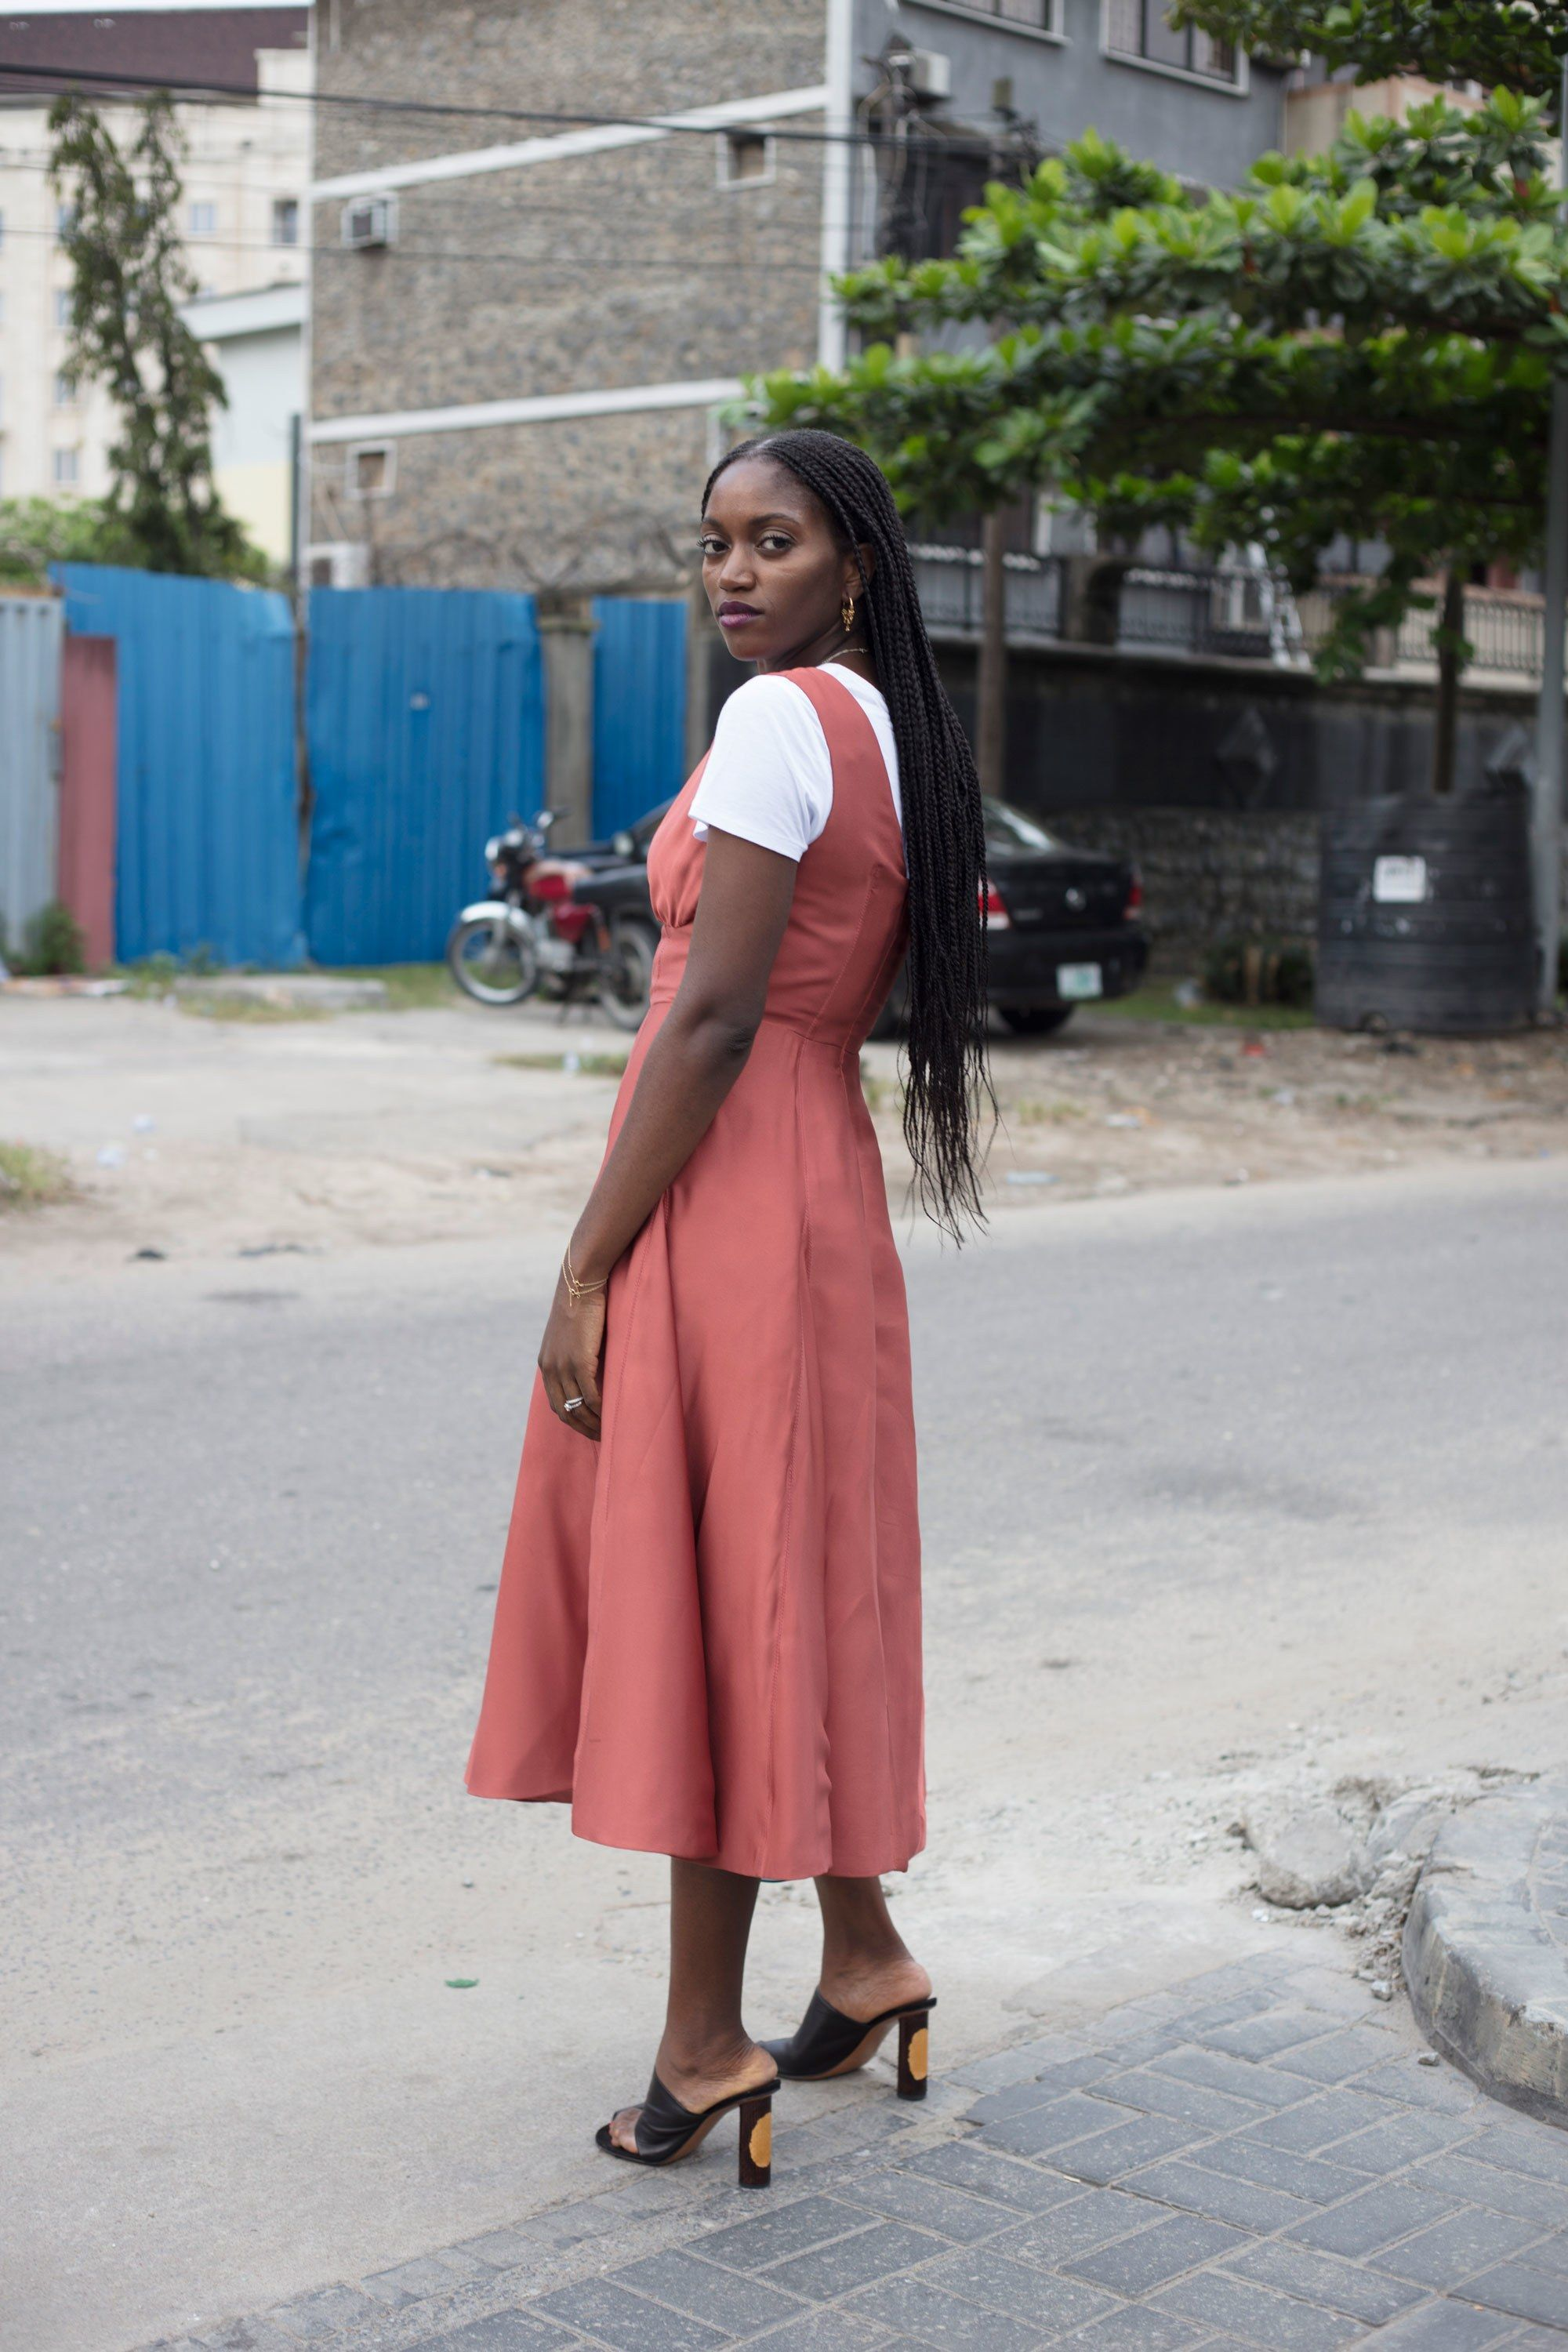 faf11747aa4c BG STREET STYLE The Best Street Style at Lagos Fashion and Design Week 2017   africanfashiondesign